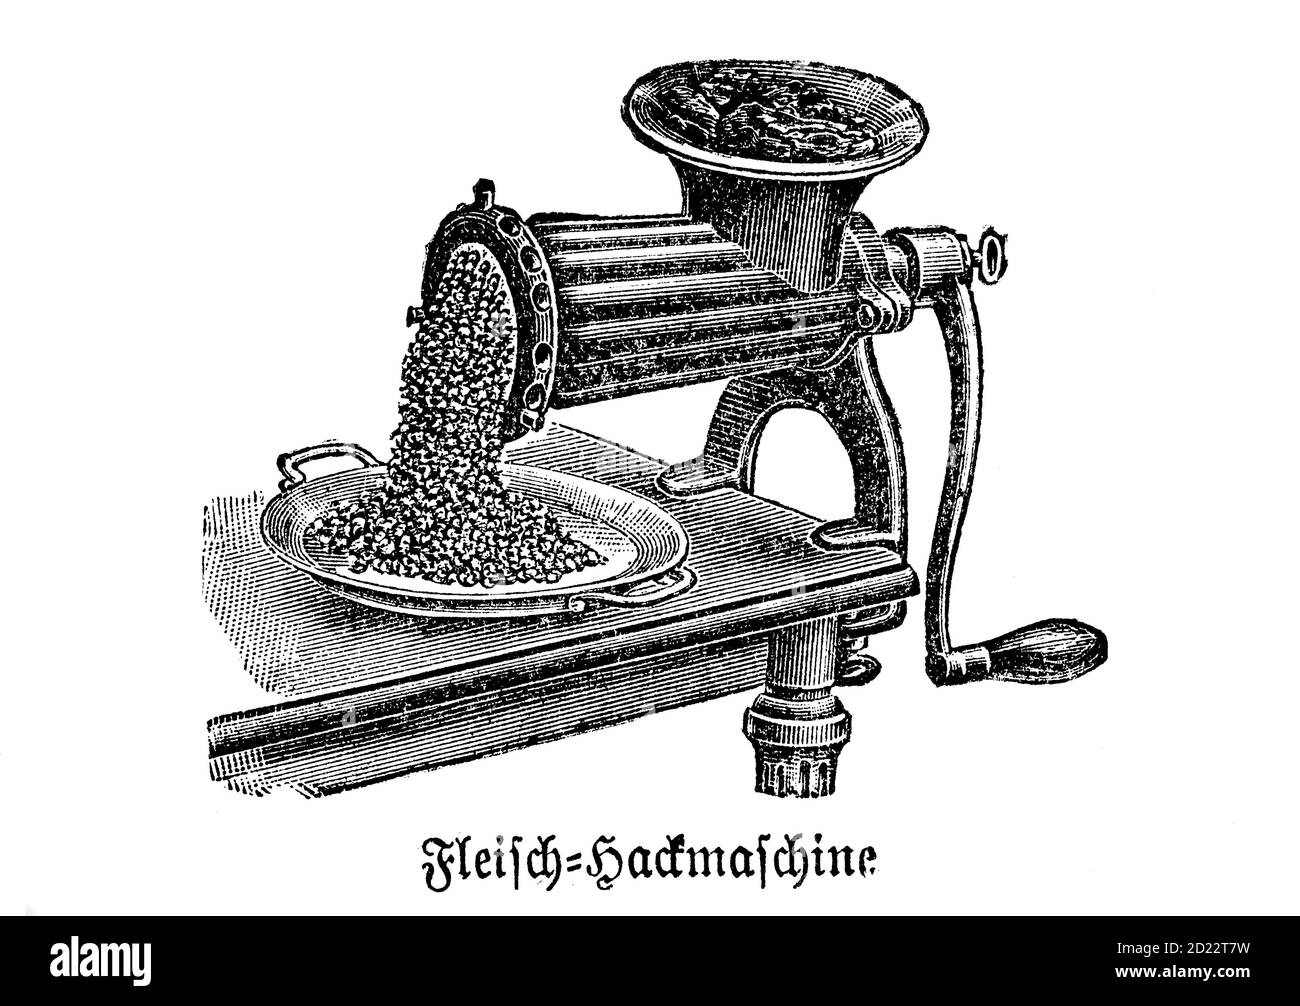 kitchen implement, Meat - Hoe, meat grinder, historical kitchen appliances, Betty Gleim's cookbook, 1847  /   Fleisch - Hackmaschine, Fleischwolf, historische Küchengeräte, Betty Gleims Kochbuch, 1847, Historisch, historical, digital improved reproduction of an original from the 19th century / digitale Reproduktion einer Originalvorlage aus dem 19. Jahrhundert Stock Photo